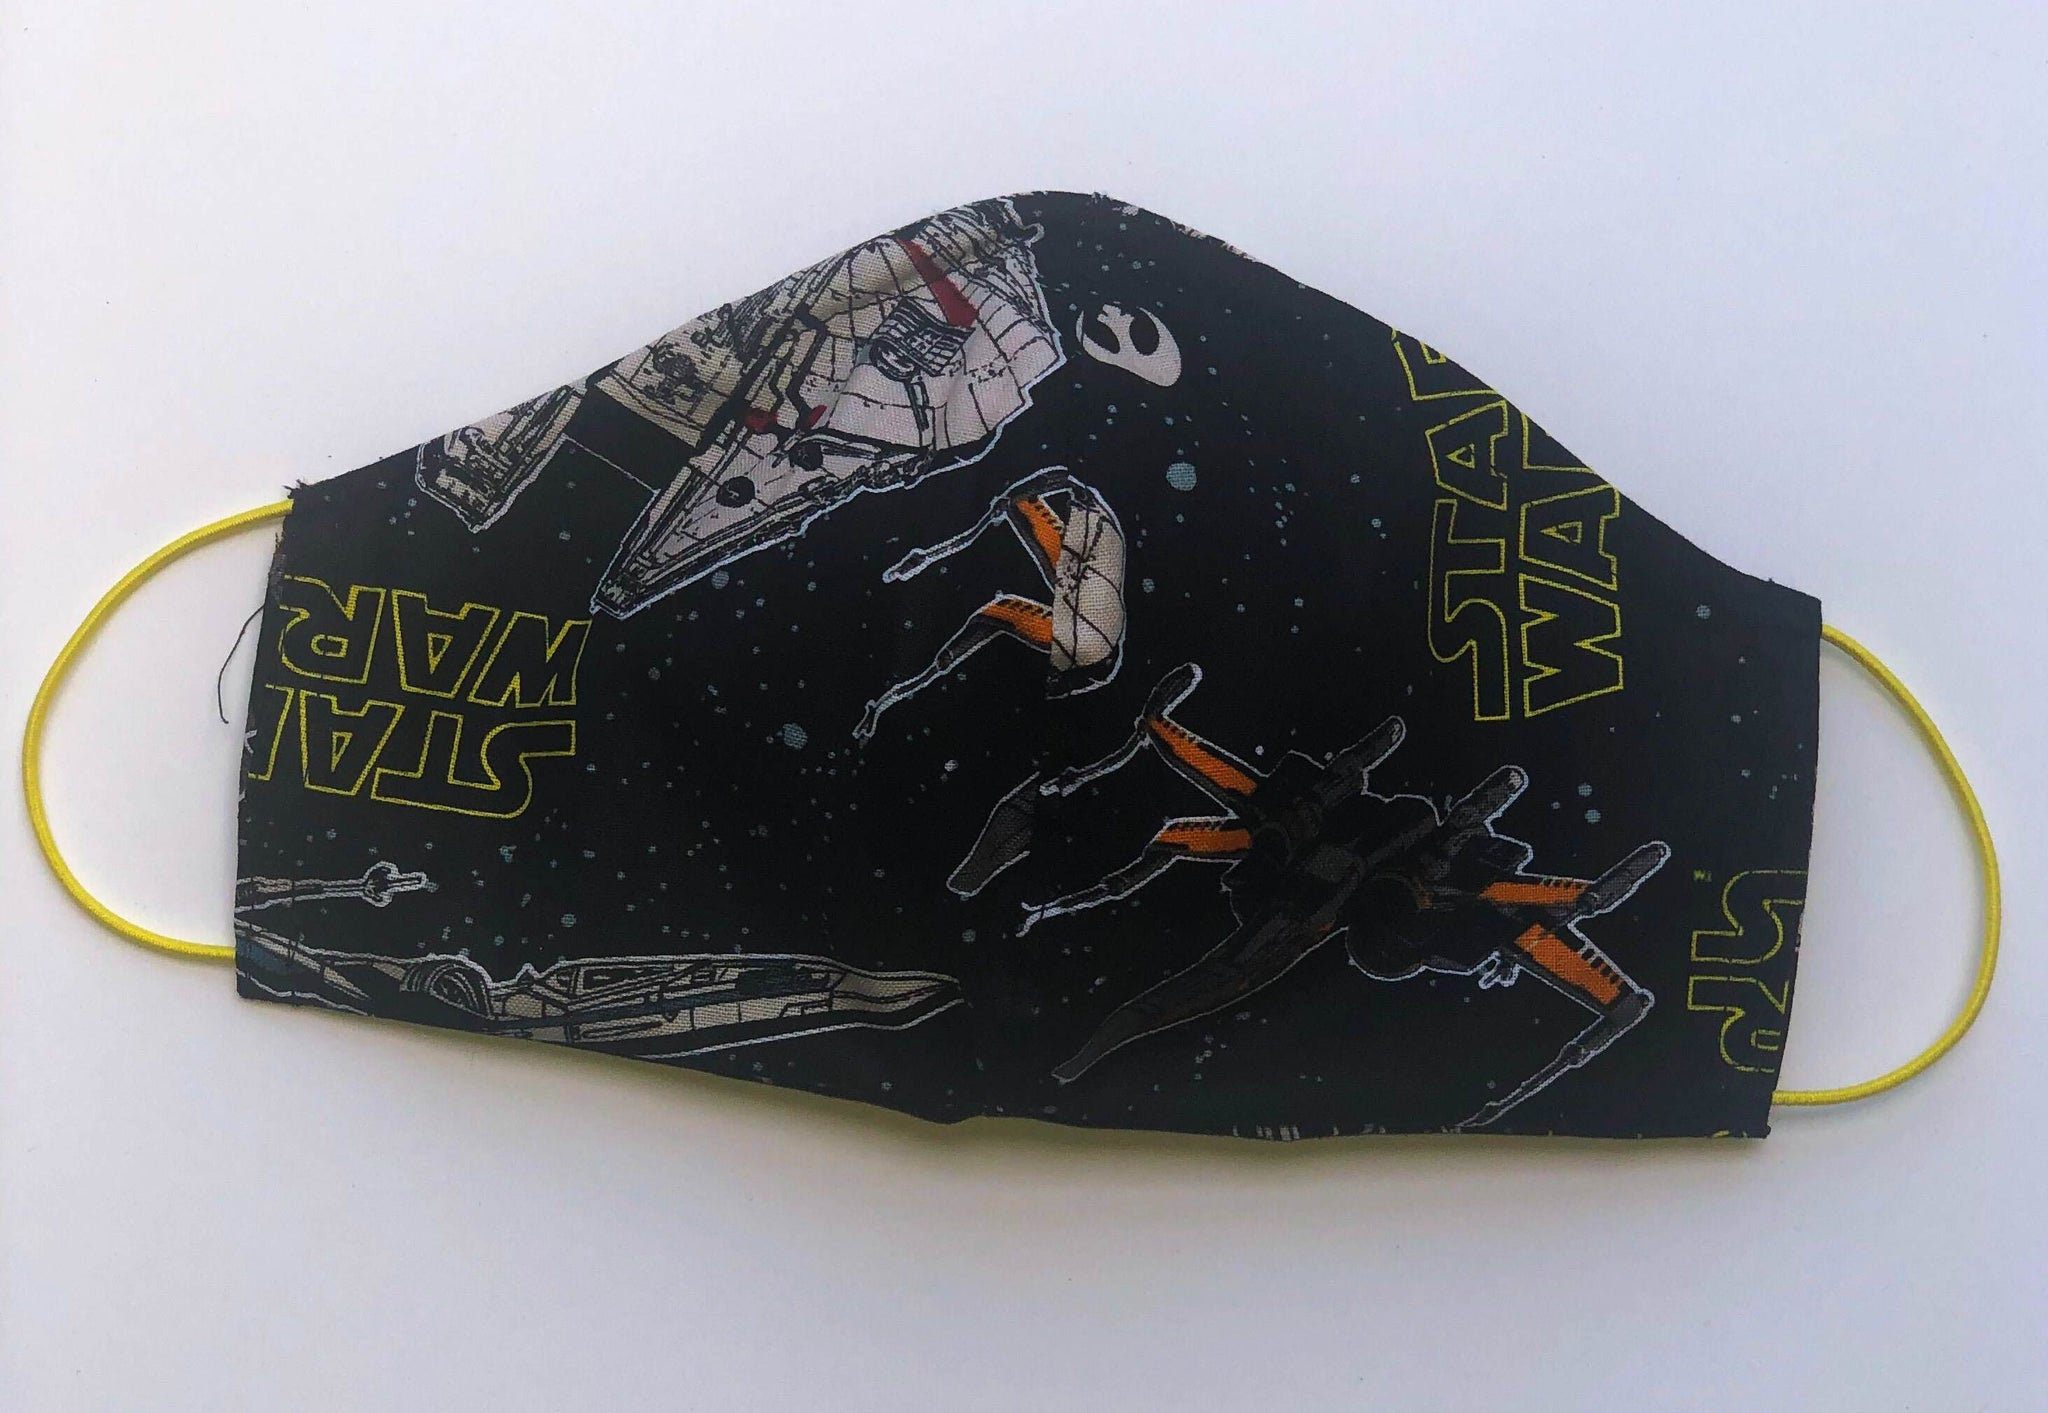 Space Wars face mask